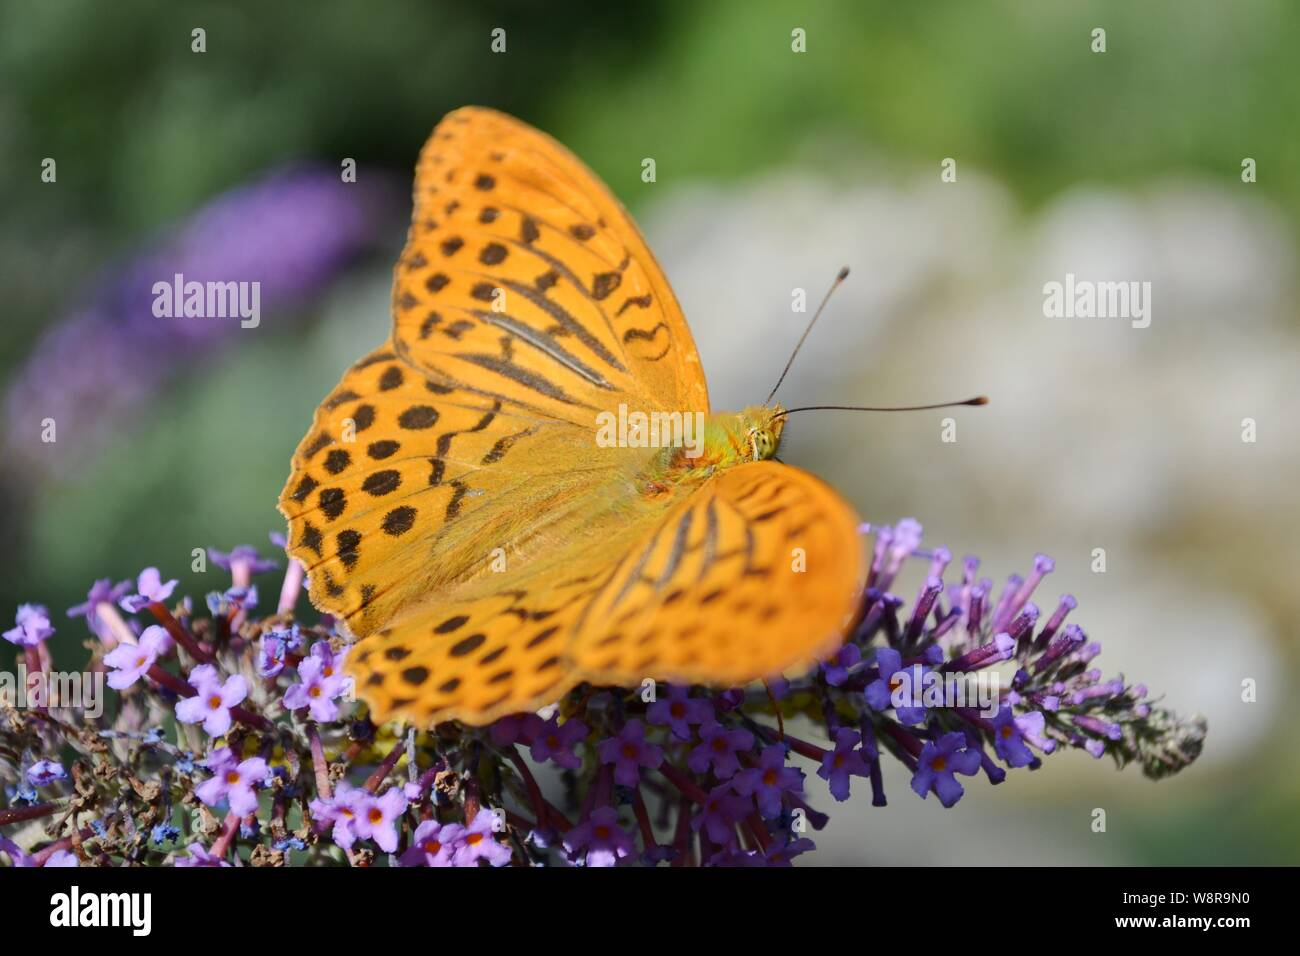 Butterfly fritillary Argynnis paphia feeding on buddleja flowers in the forest. Stock Photo